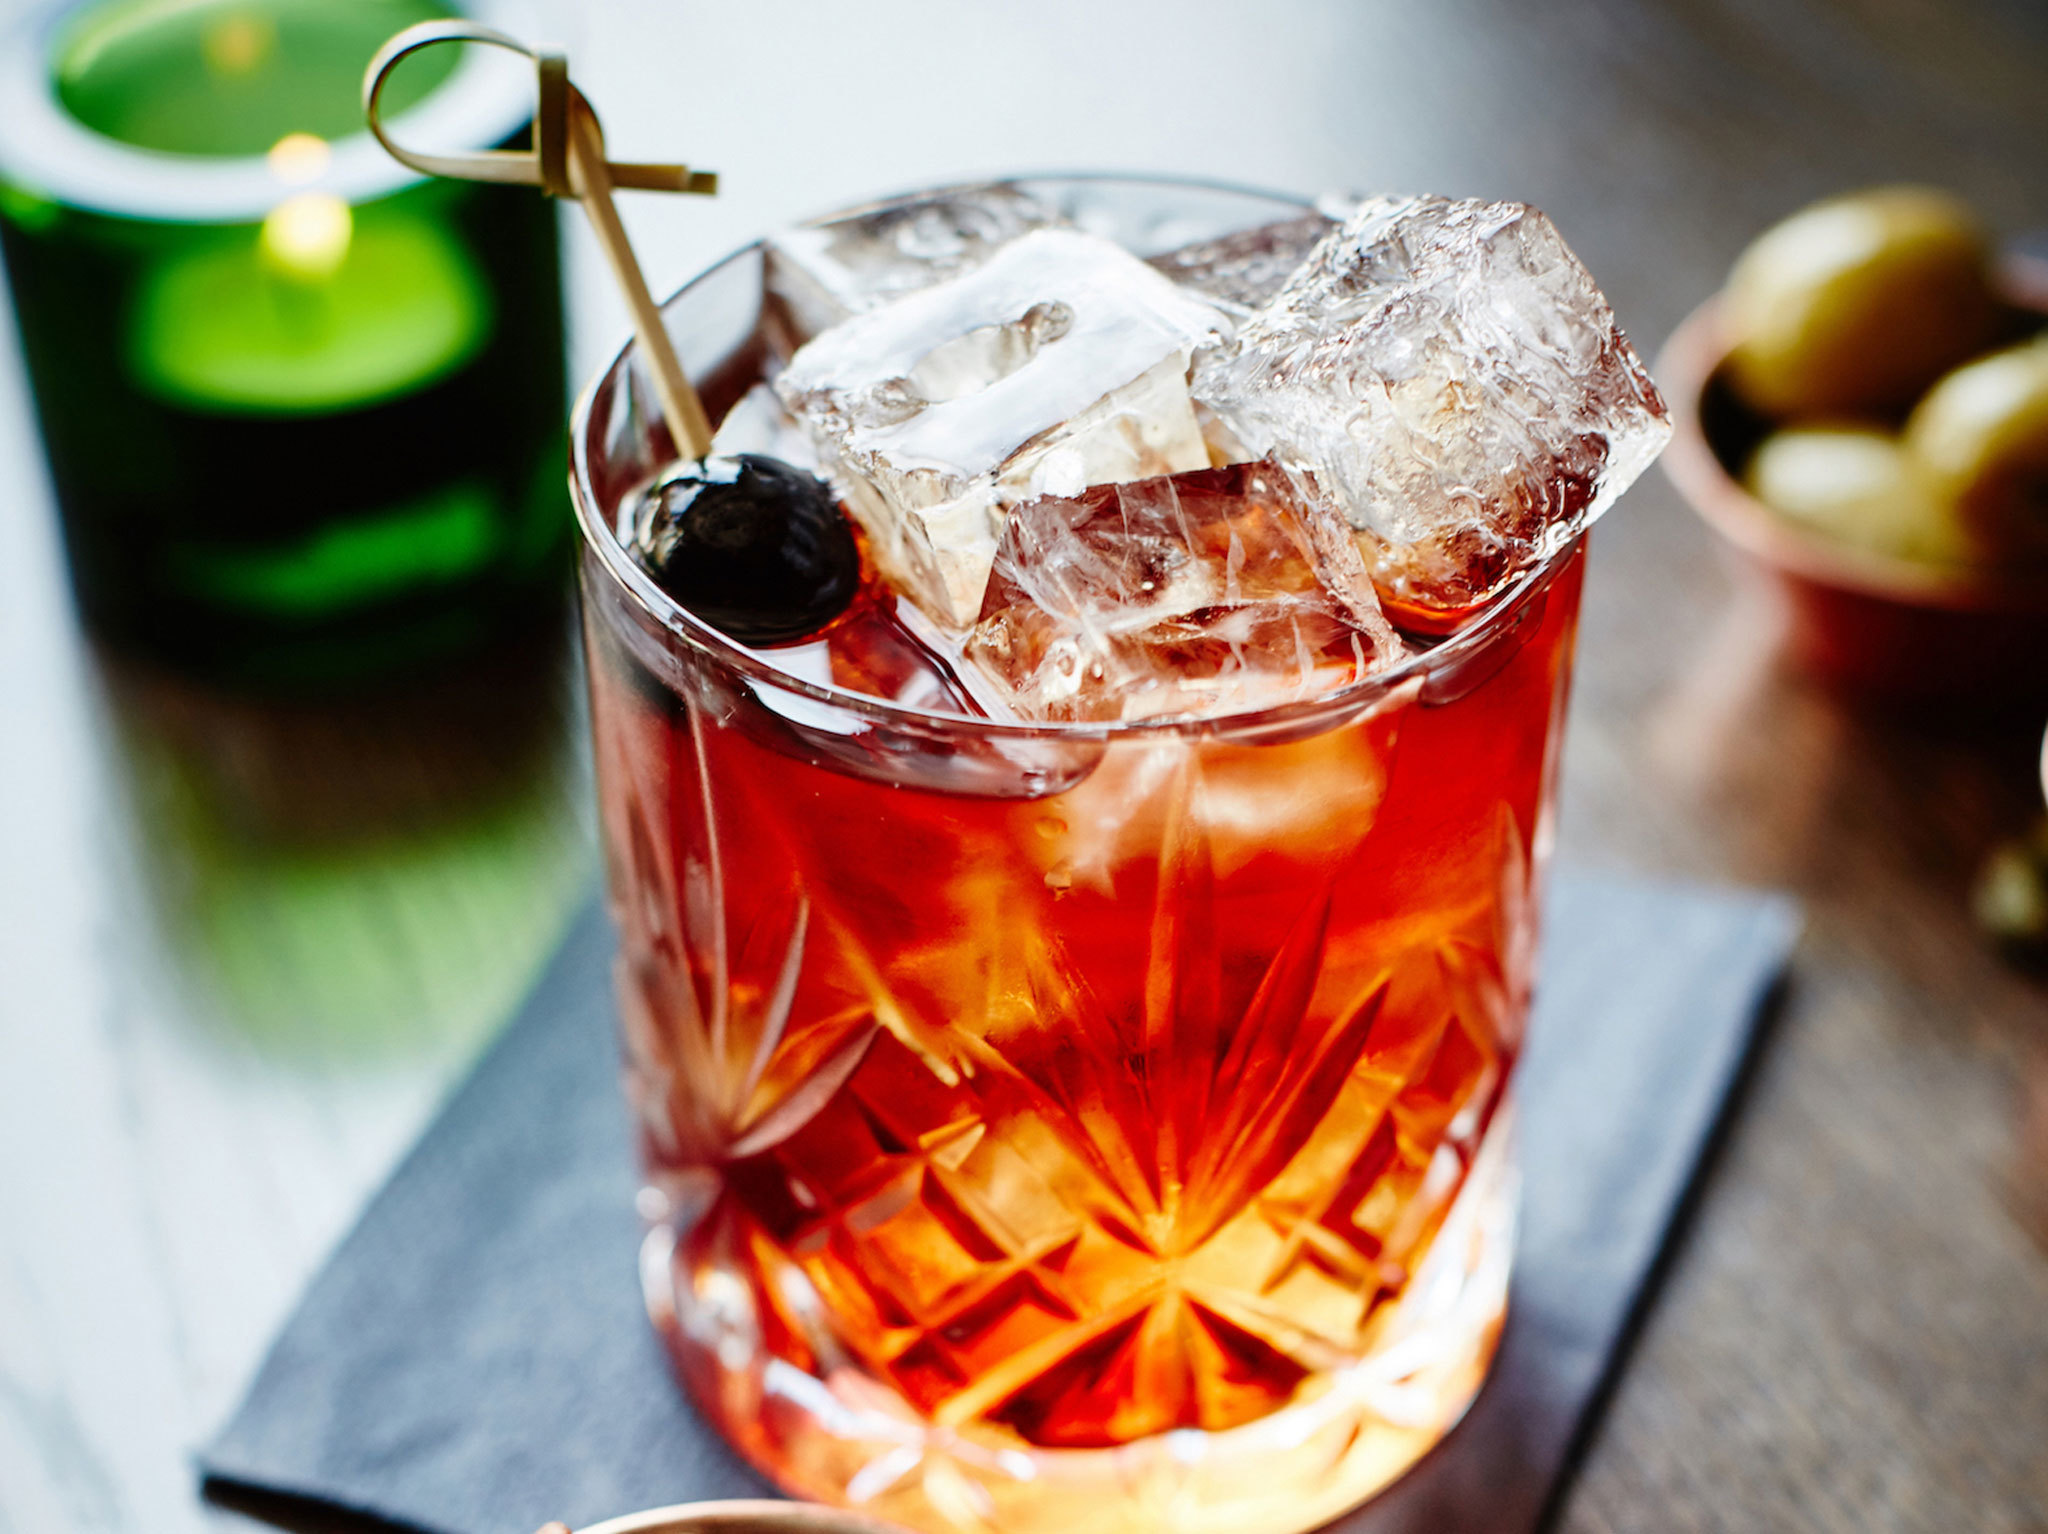 London's best restaurants for drinking cocktails - Galley